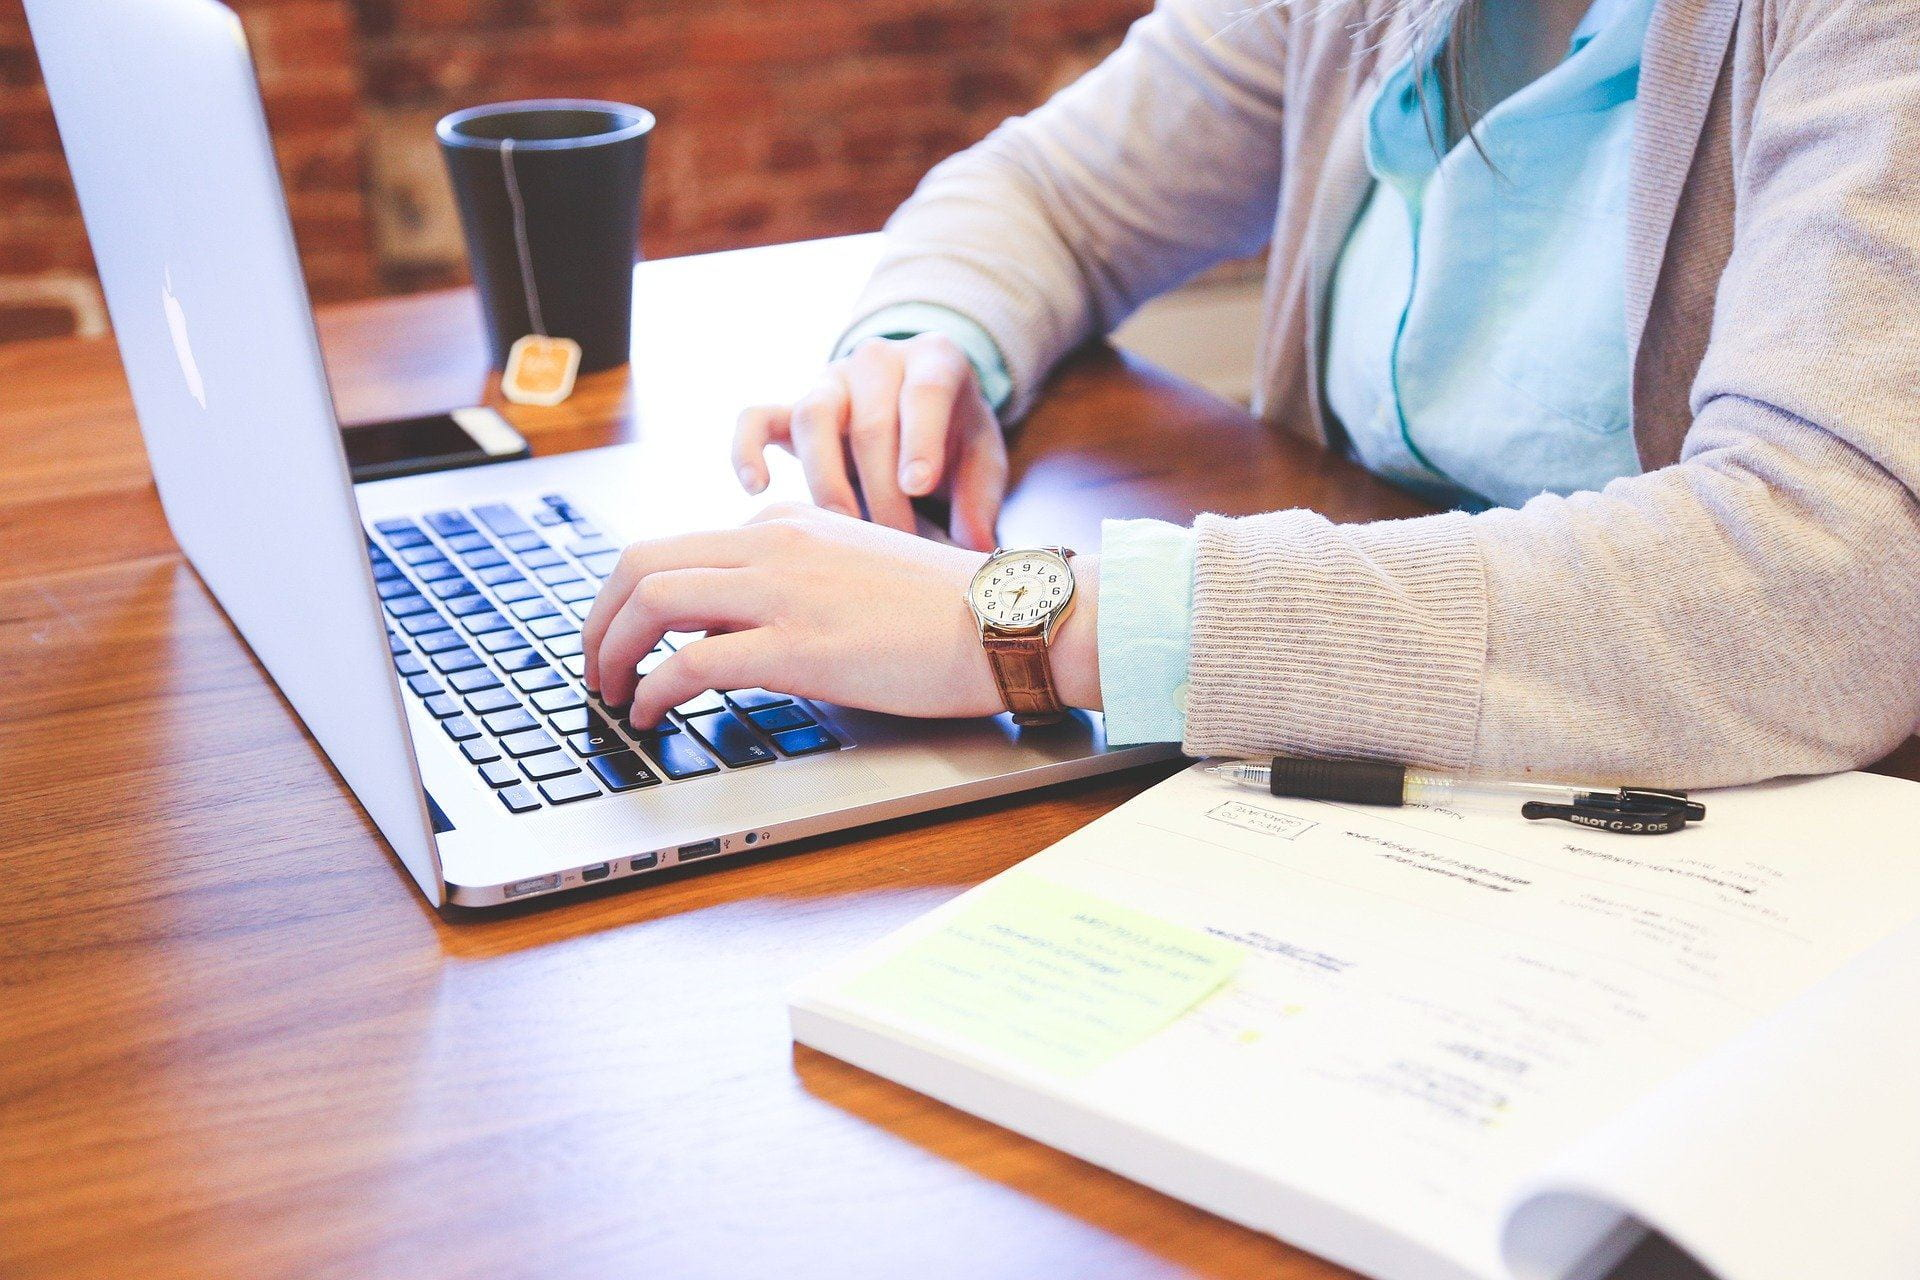 Decorative: [Image Description:] A woman's hands can be seen writing on a laptop. She has a text book open next to her and a cup of coffee can be seen on the end of the table.